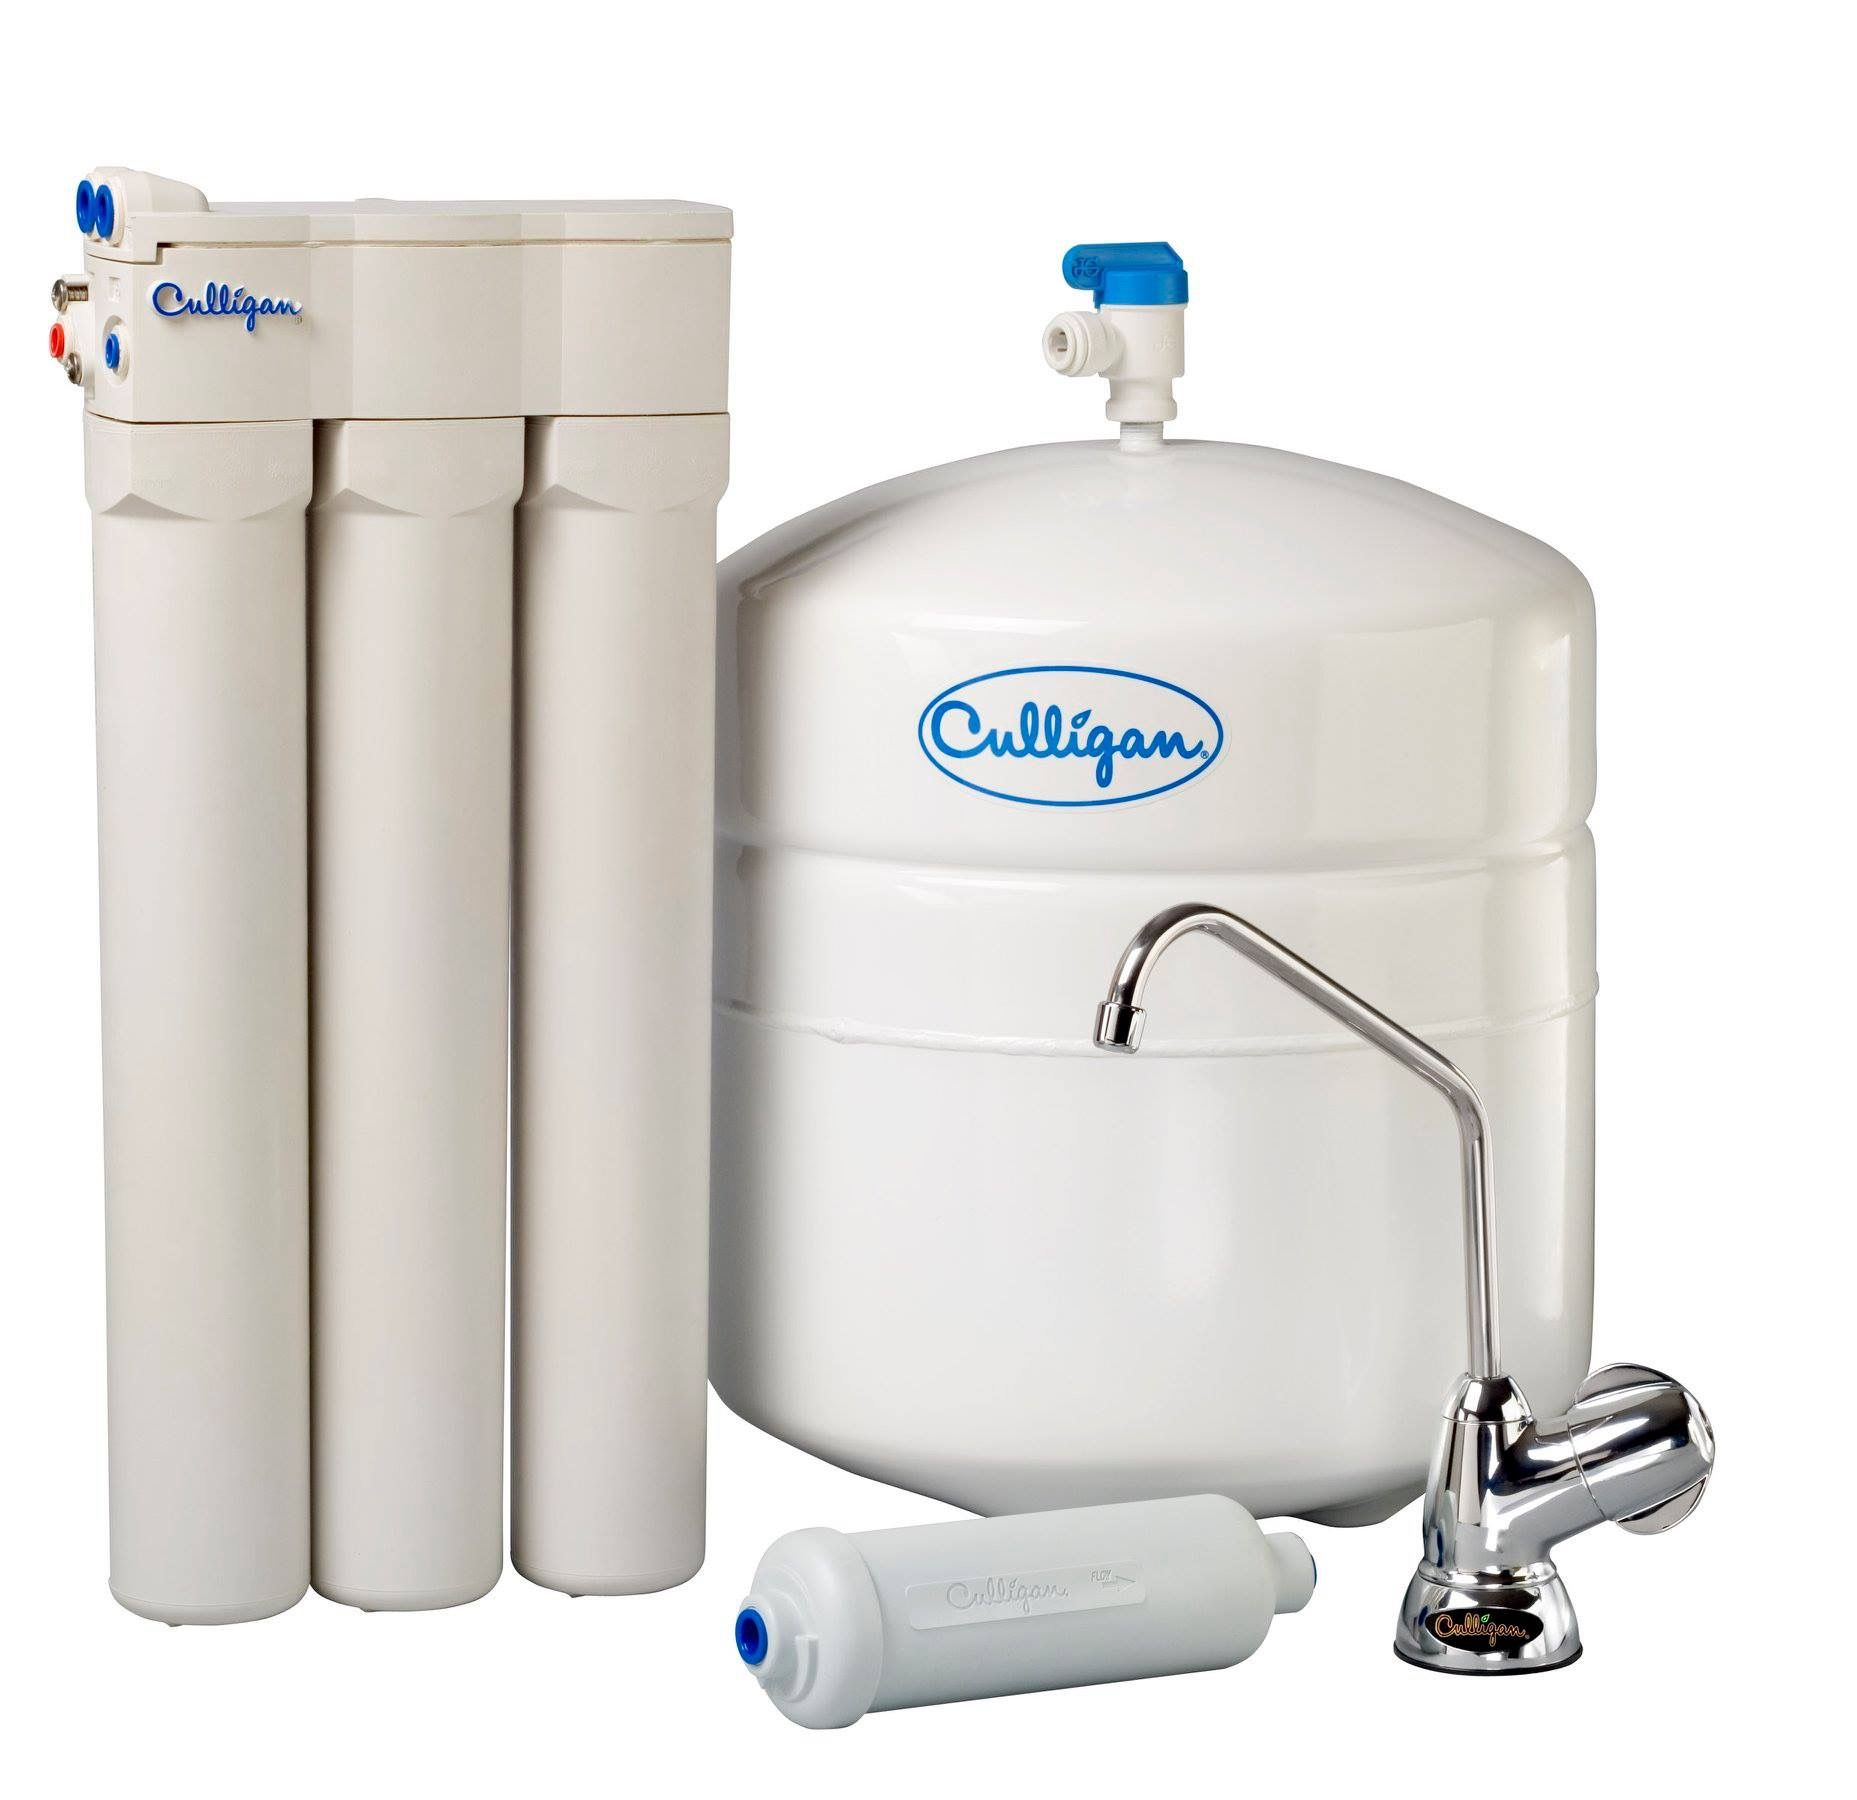 Pin By Shannon Miller On About Water Quality Home Water Filtration Culligan Water Filtration System